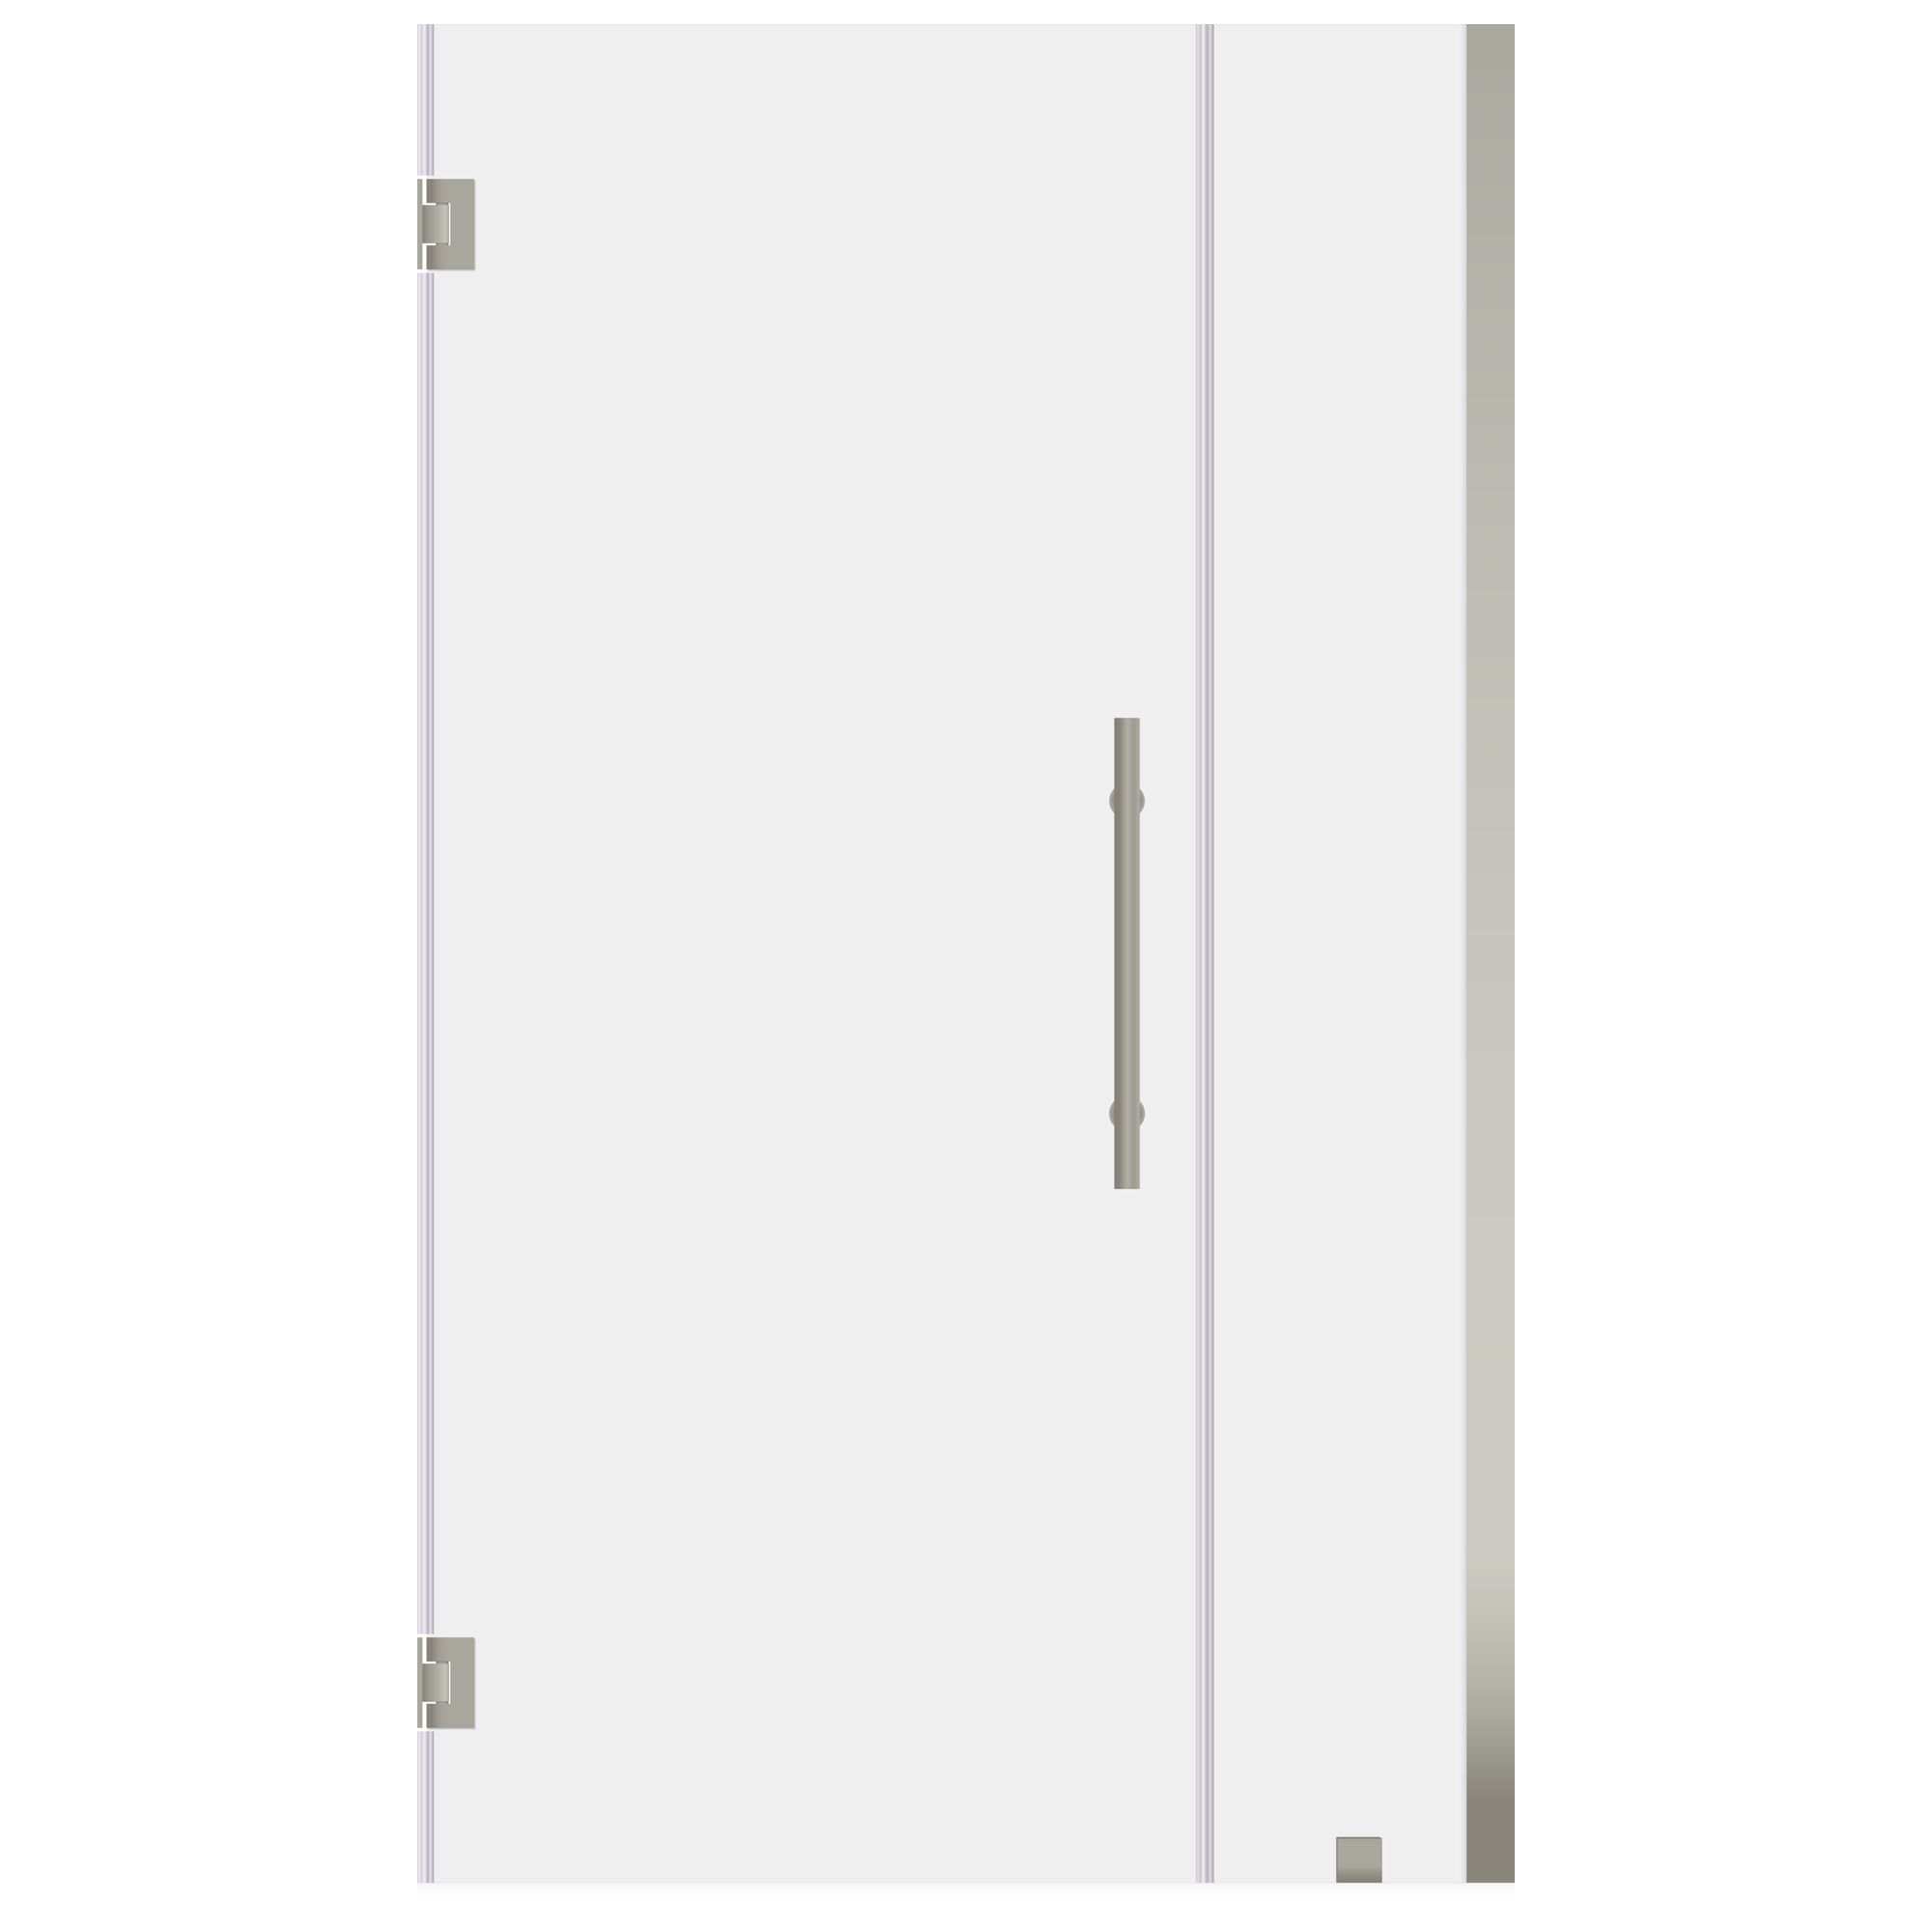 Lesscare Ultra E Brushed Nickel 32 To 33 Inch Wide X 72 Inch High Swing Out Shower Door Frameless Shower Doors Shower Doors Frameless Shower